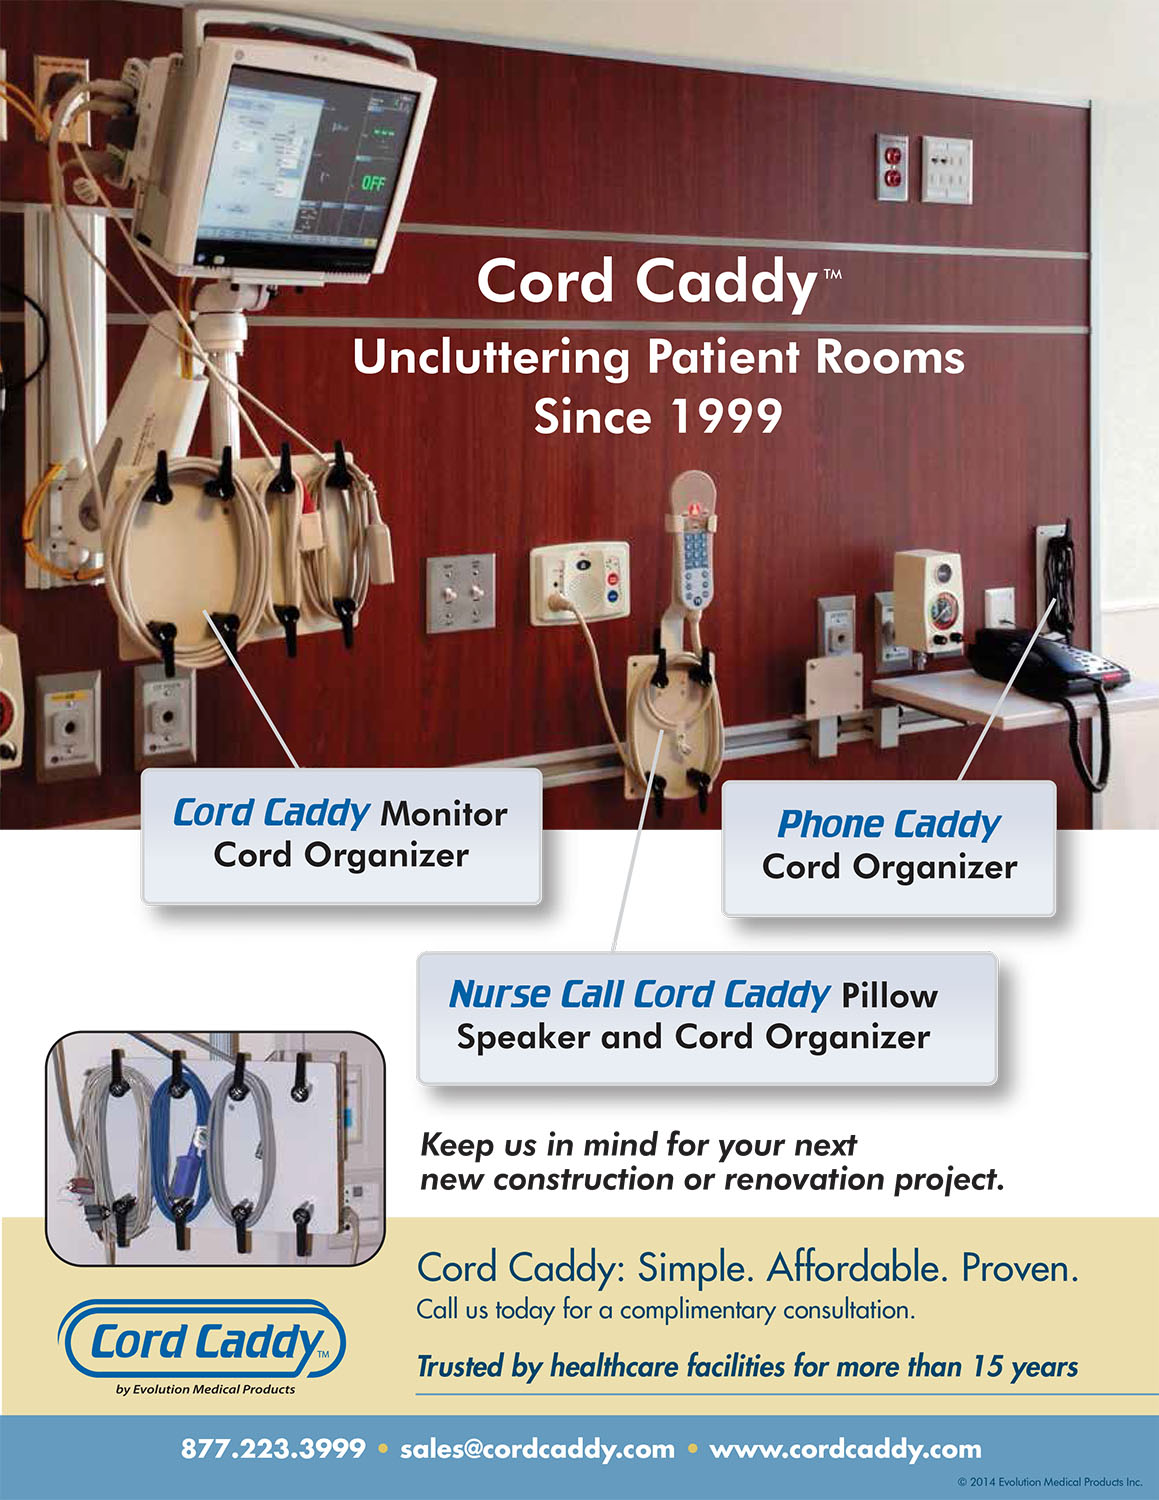 Cord Caddy | Uncluttering Patient Rooms Since 1999